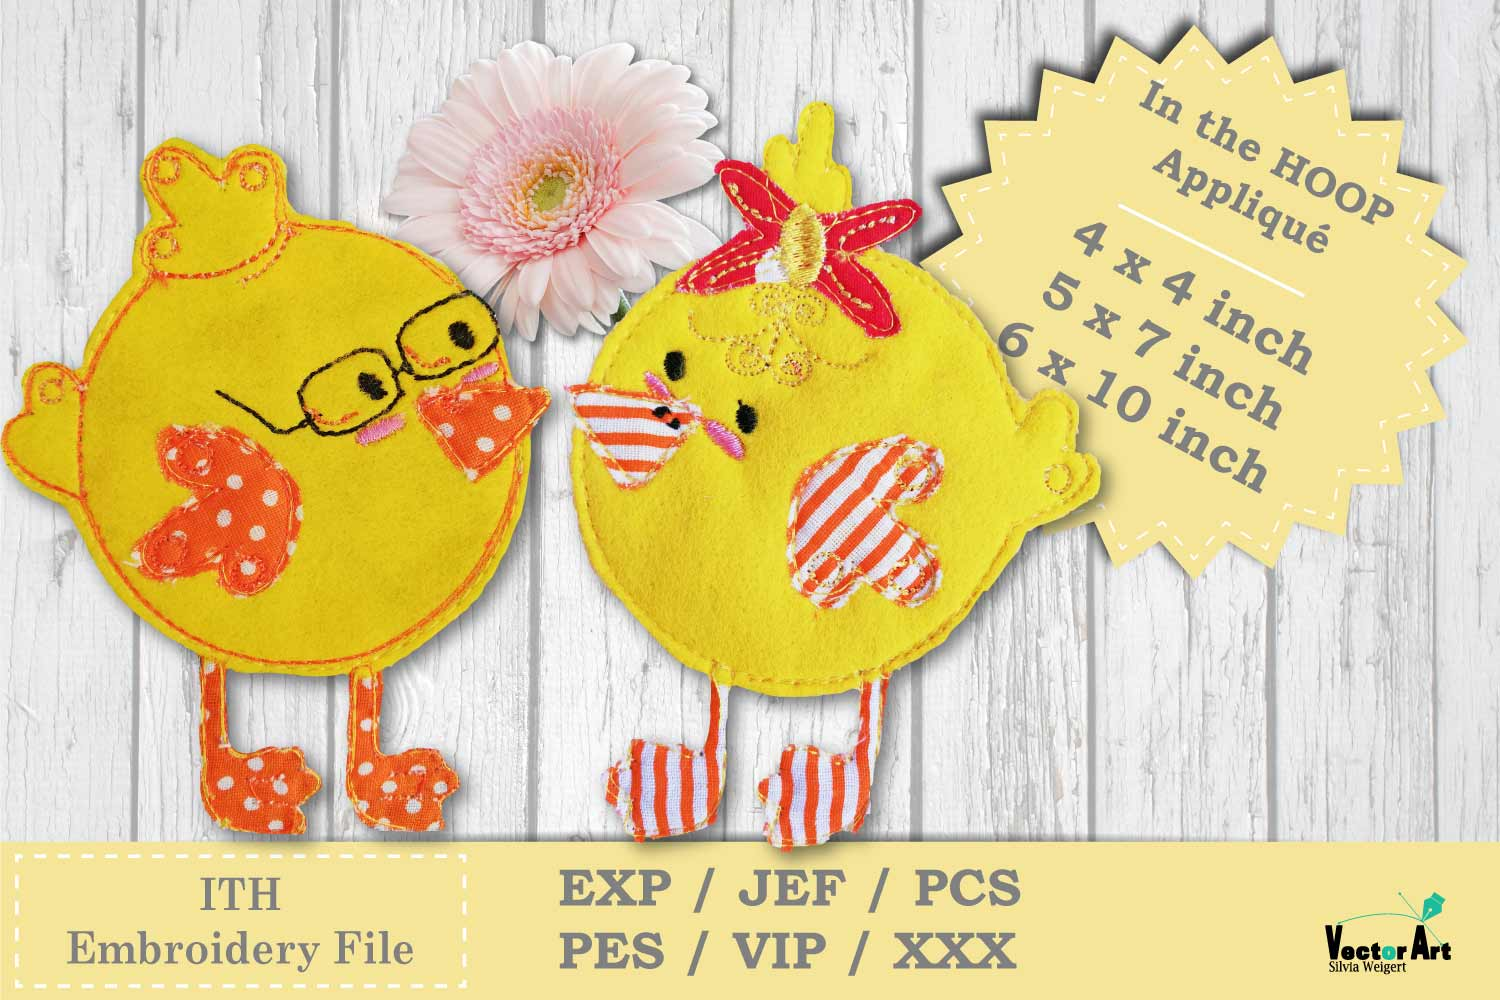 ITH Easter Bundle - Machine Embroidery Files - 10 Projects example image 13